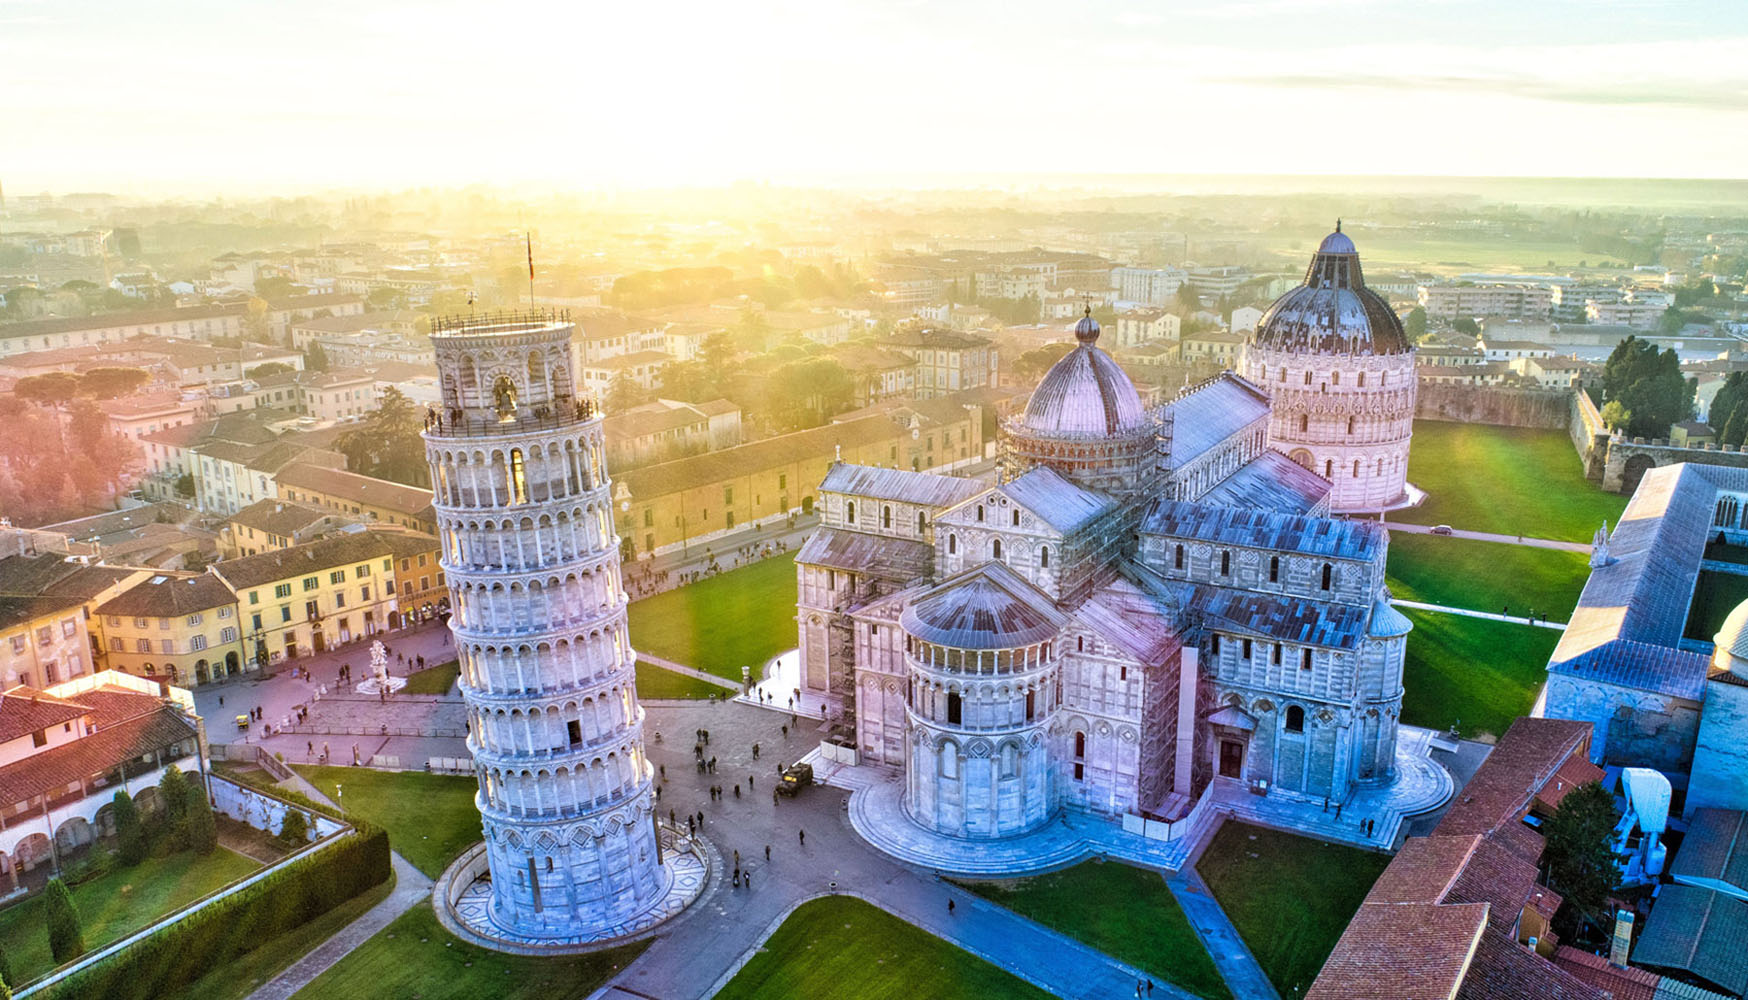 An aerial view of the Leaning Tower of Pisa.